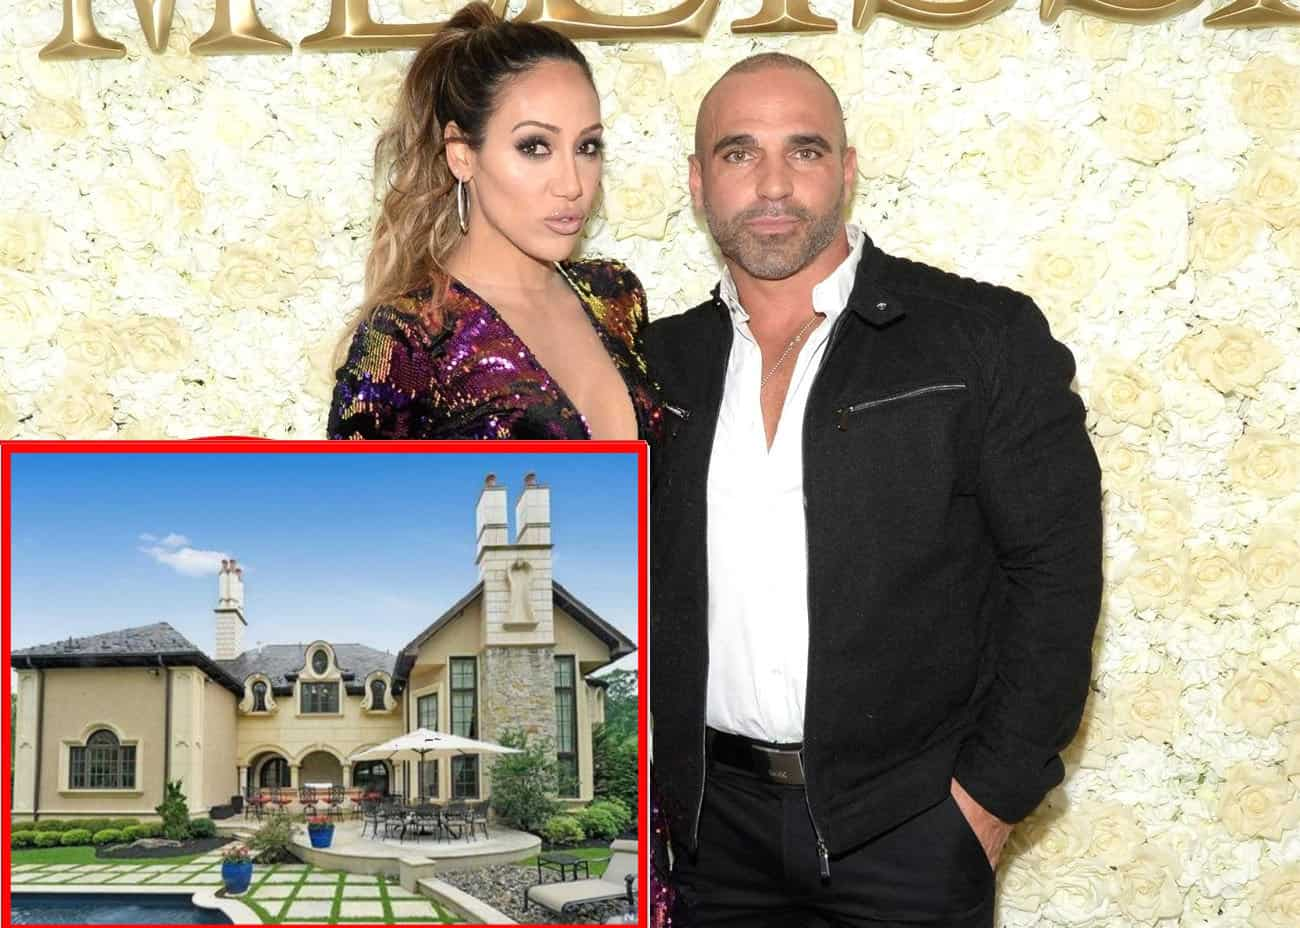 PHOTOS: Joe and Melissa Gorga Redecorate NJ Mansion and Relist it For $2.95 Million, See Inside the Redone Home of the RHONJ Stars